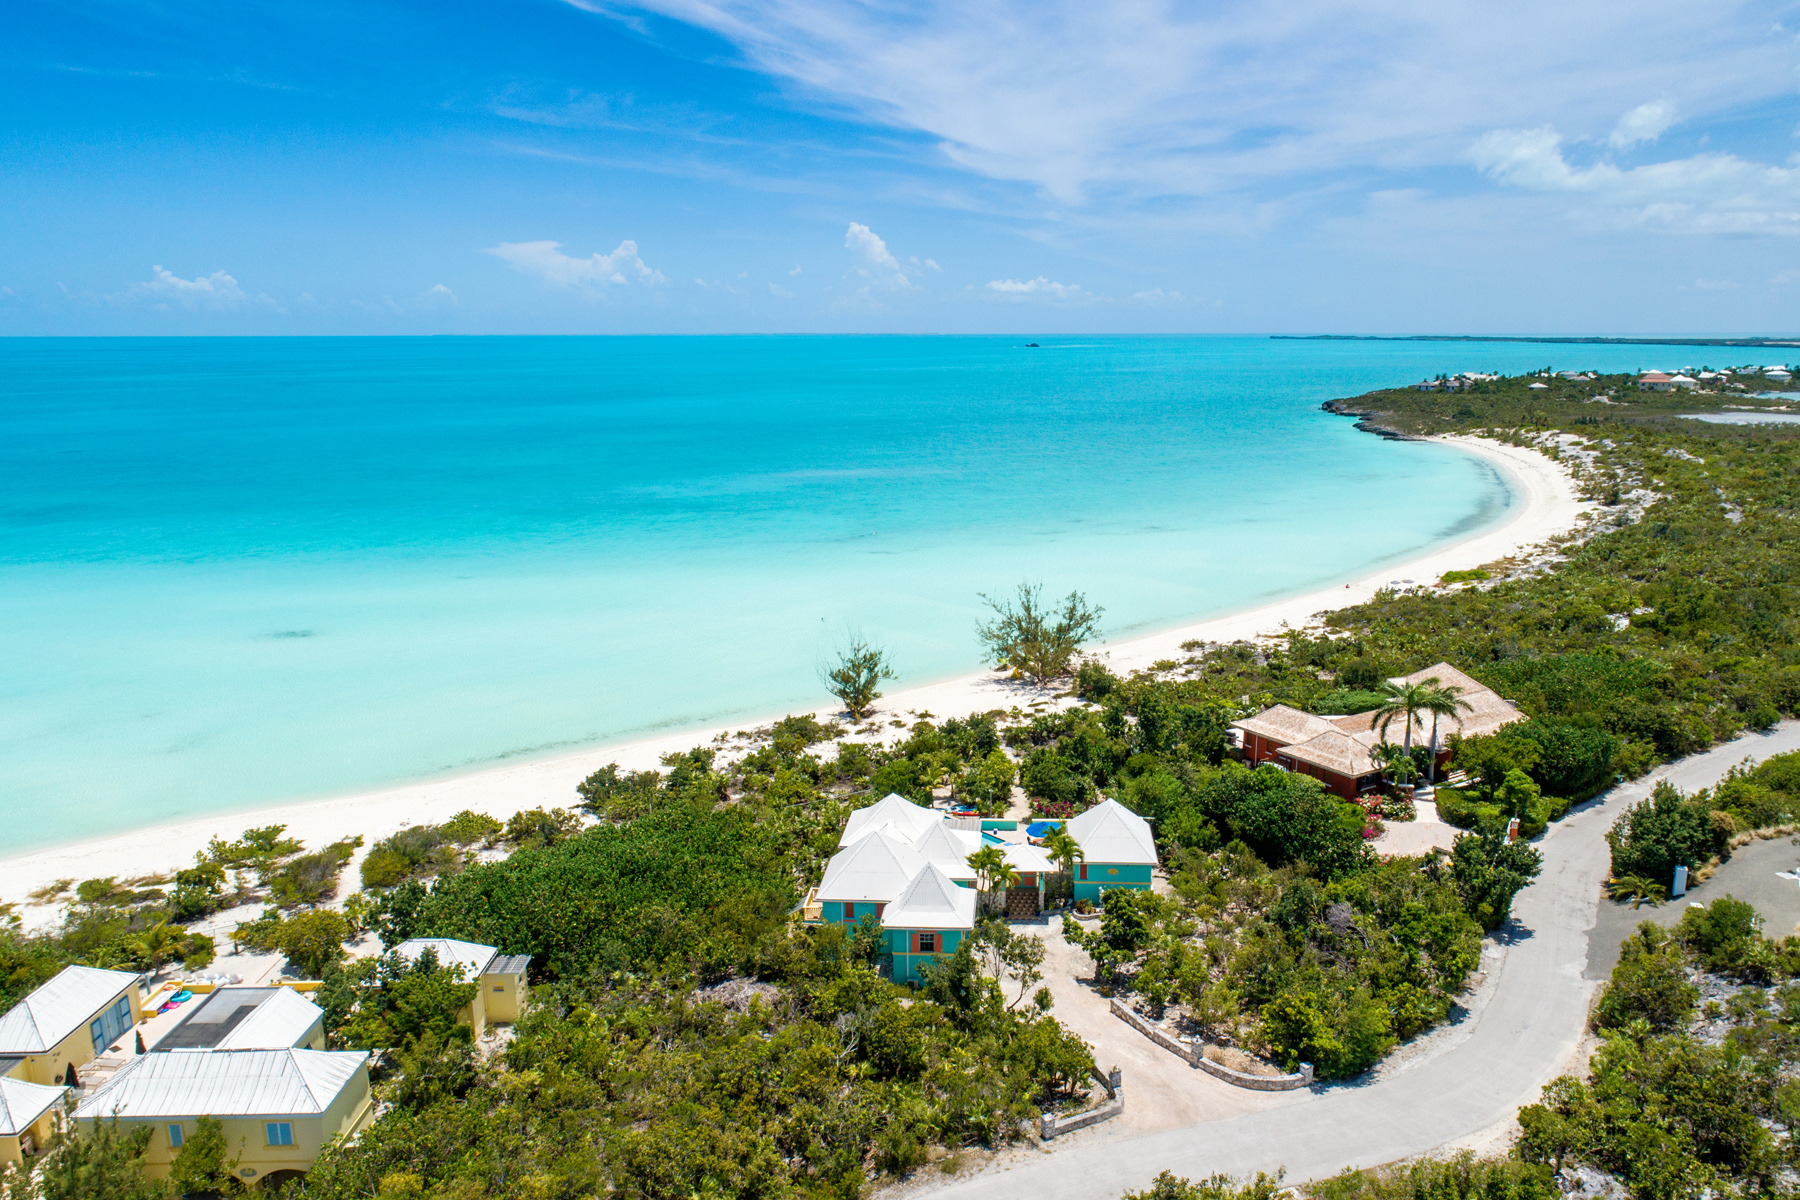 Single Family Home for Sale at Place de la Sol Taylor Bay, Providenciales Turks And Caicos Islands